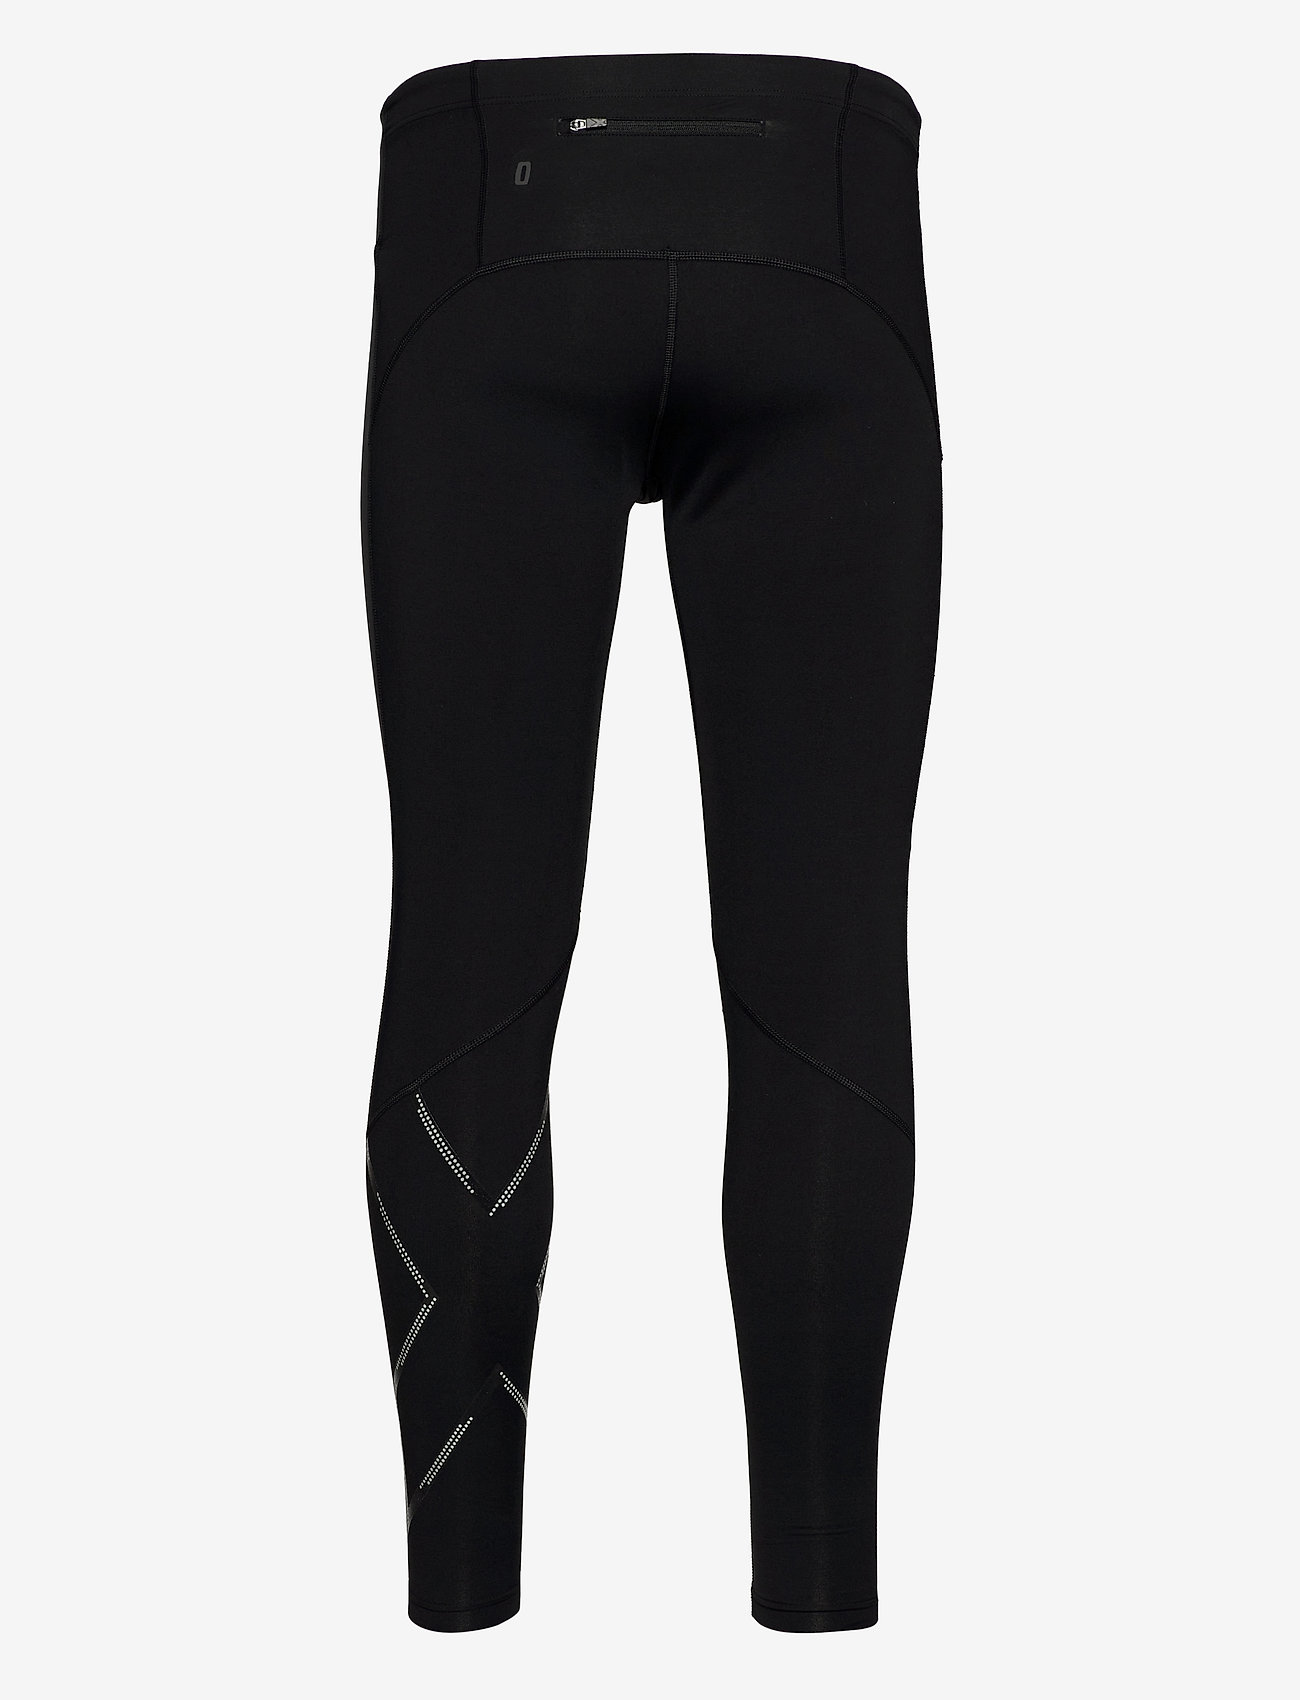 2XU WIND DEFENCE COMPRESSION TIGH - Tights & Shorts BLACK/STRIPED SILVER REFLECTIV - Menn Klær